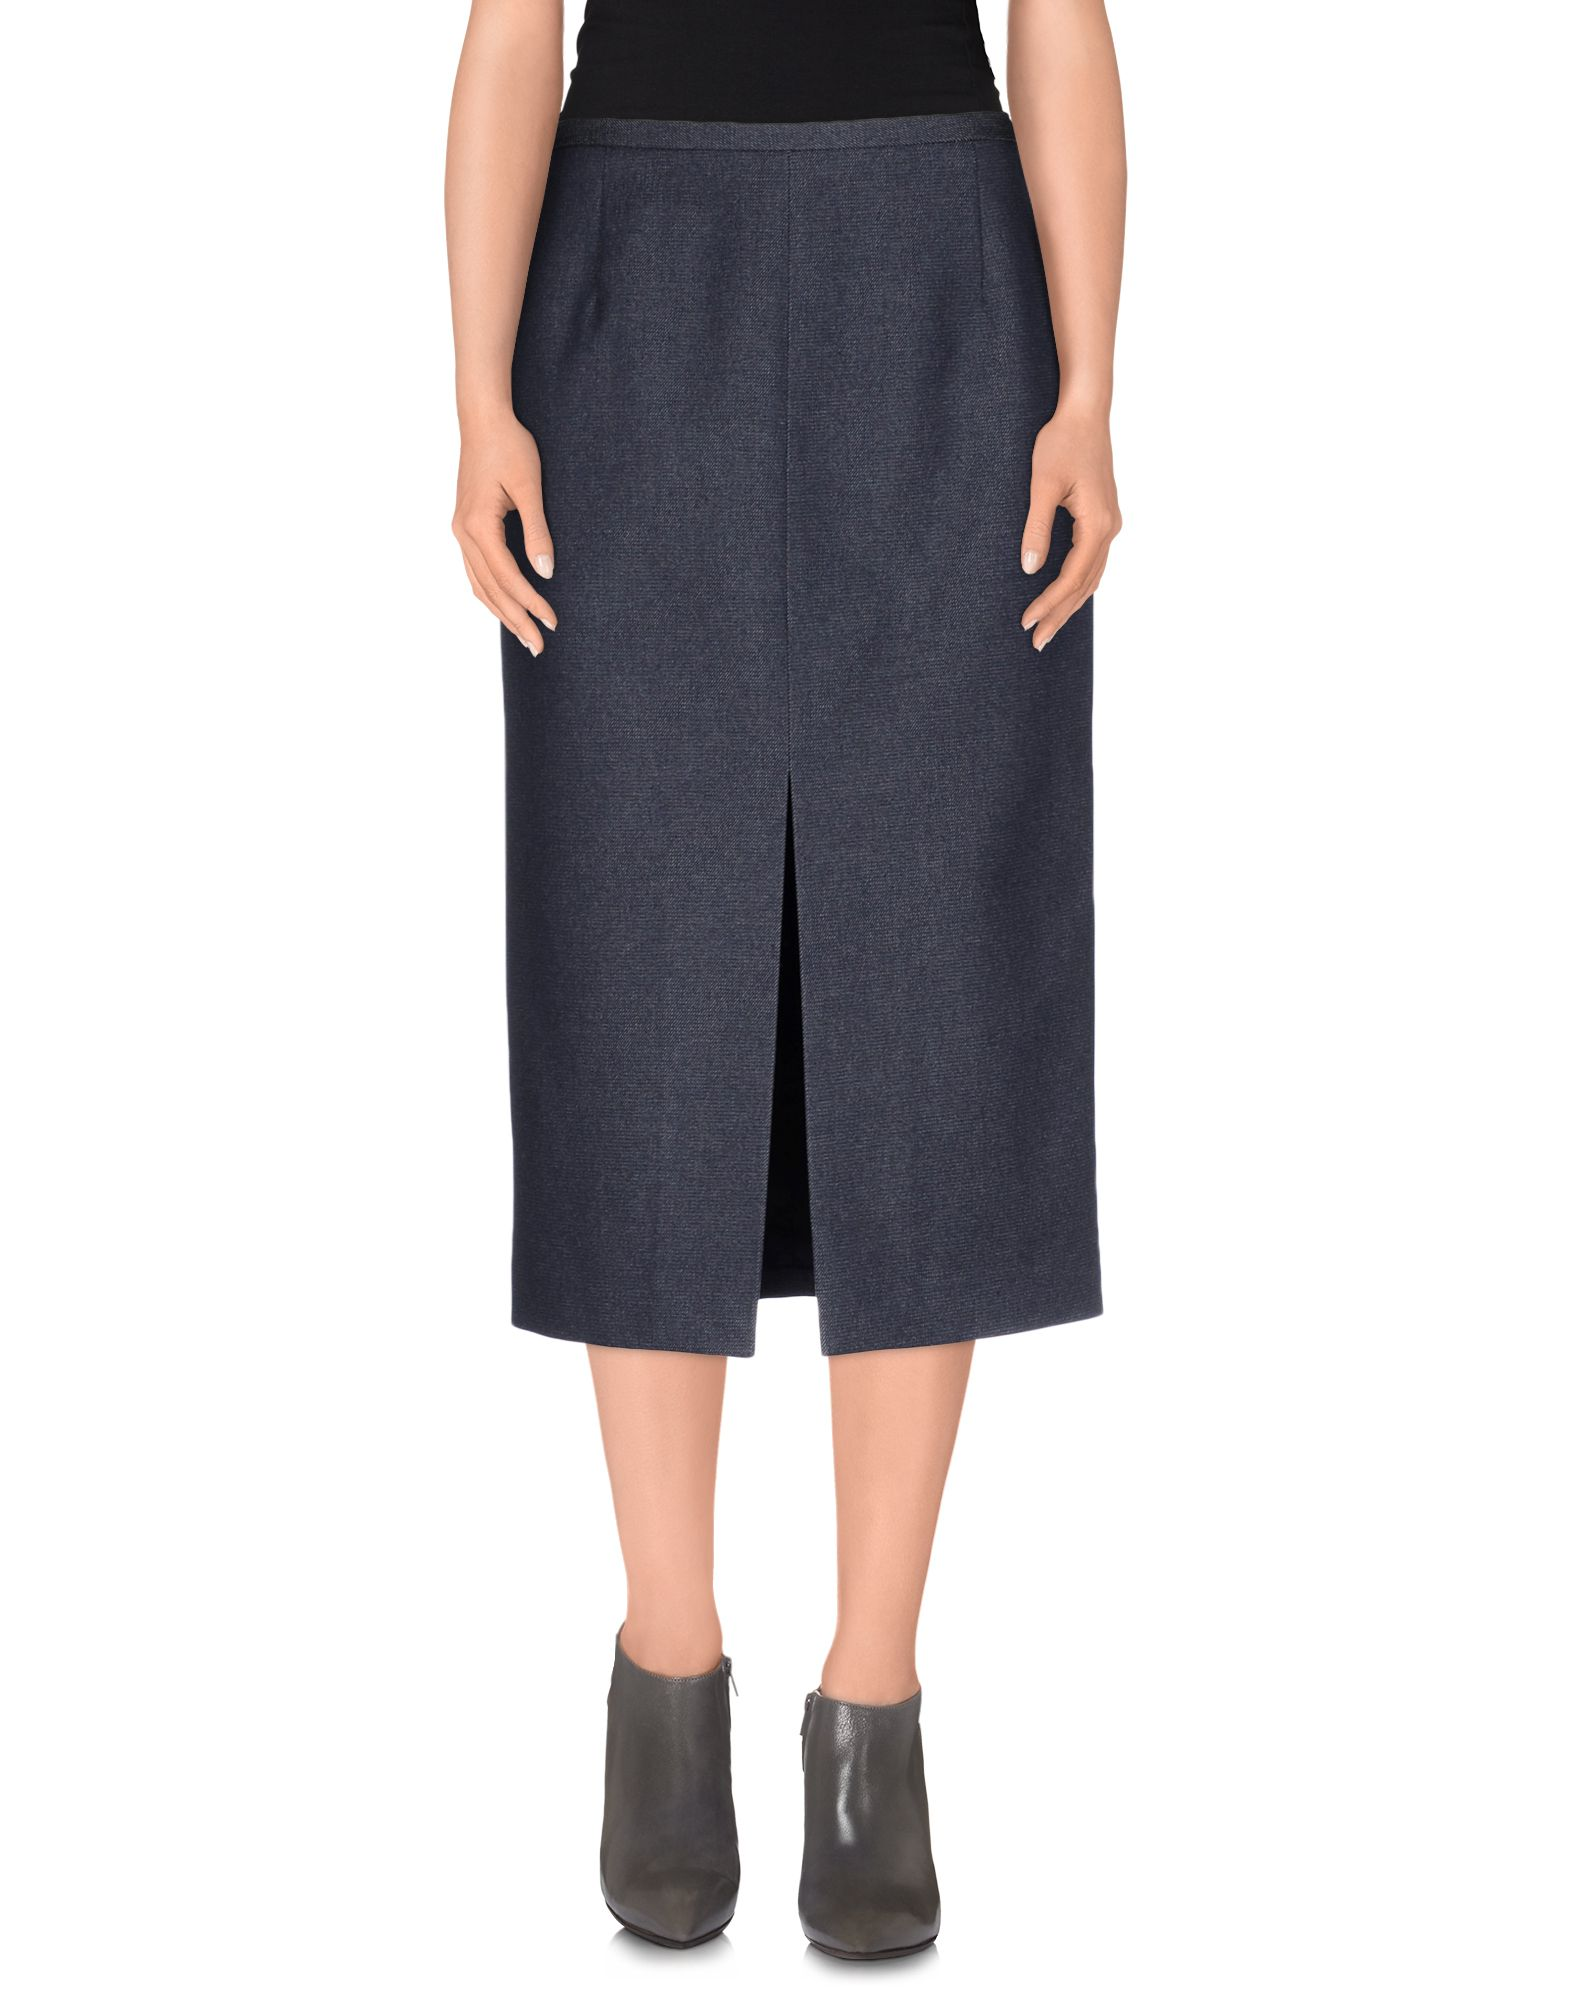 michael kors female  michael kors denim skirts